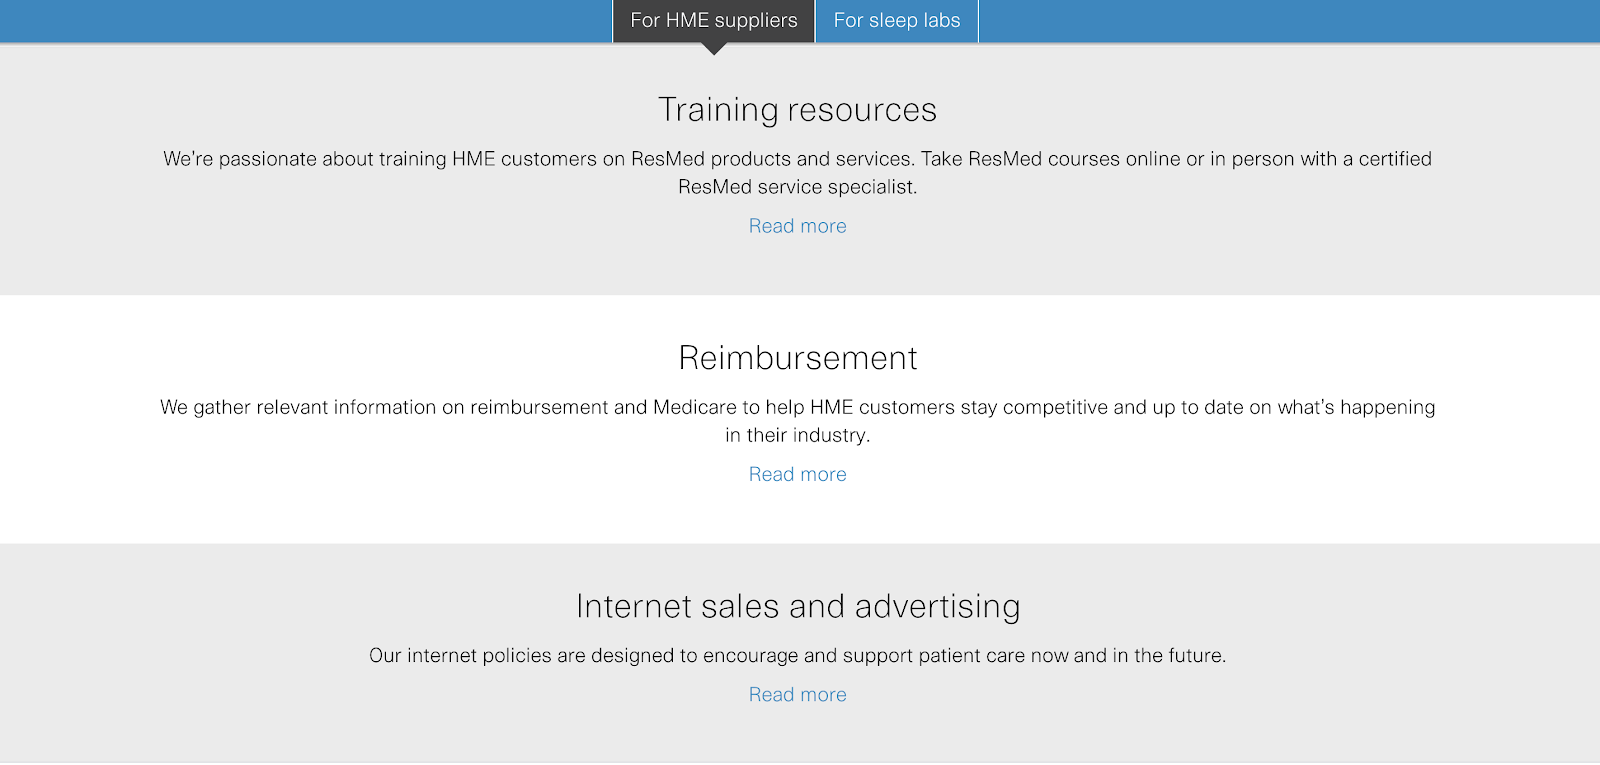 ResMed resources page shows their offerings for SEO purposes.